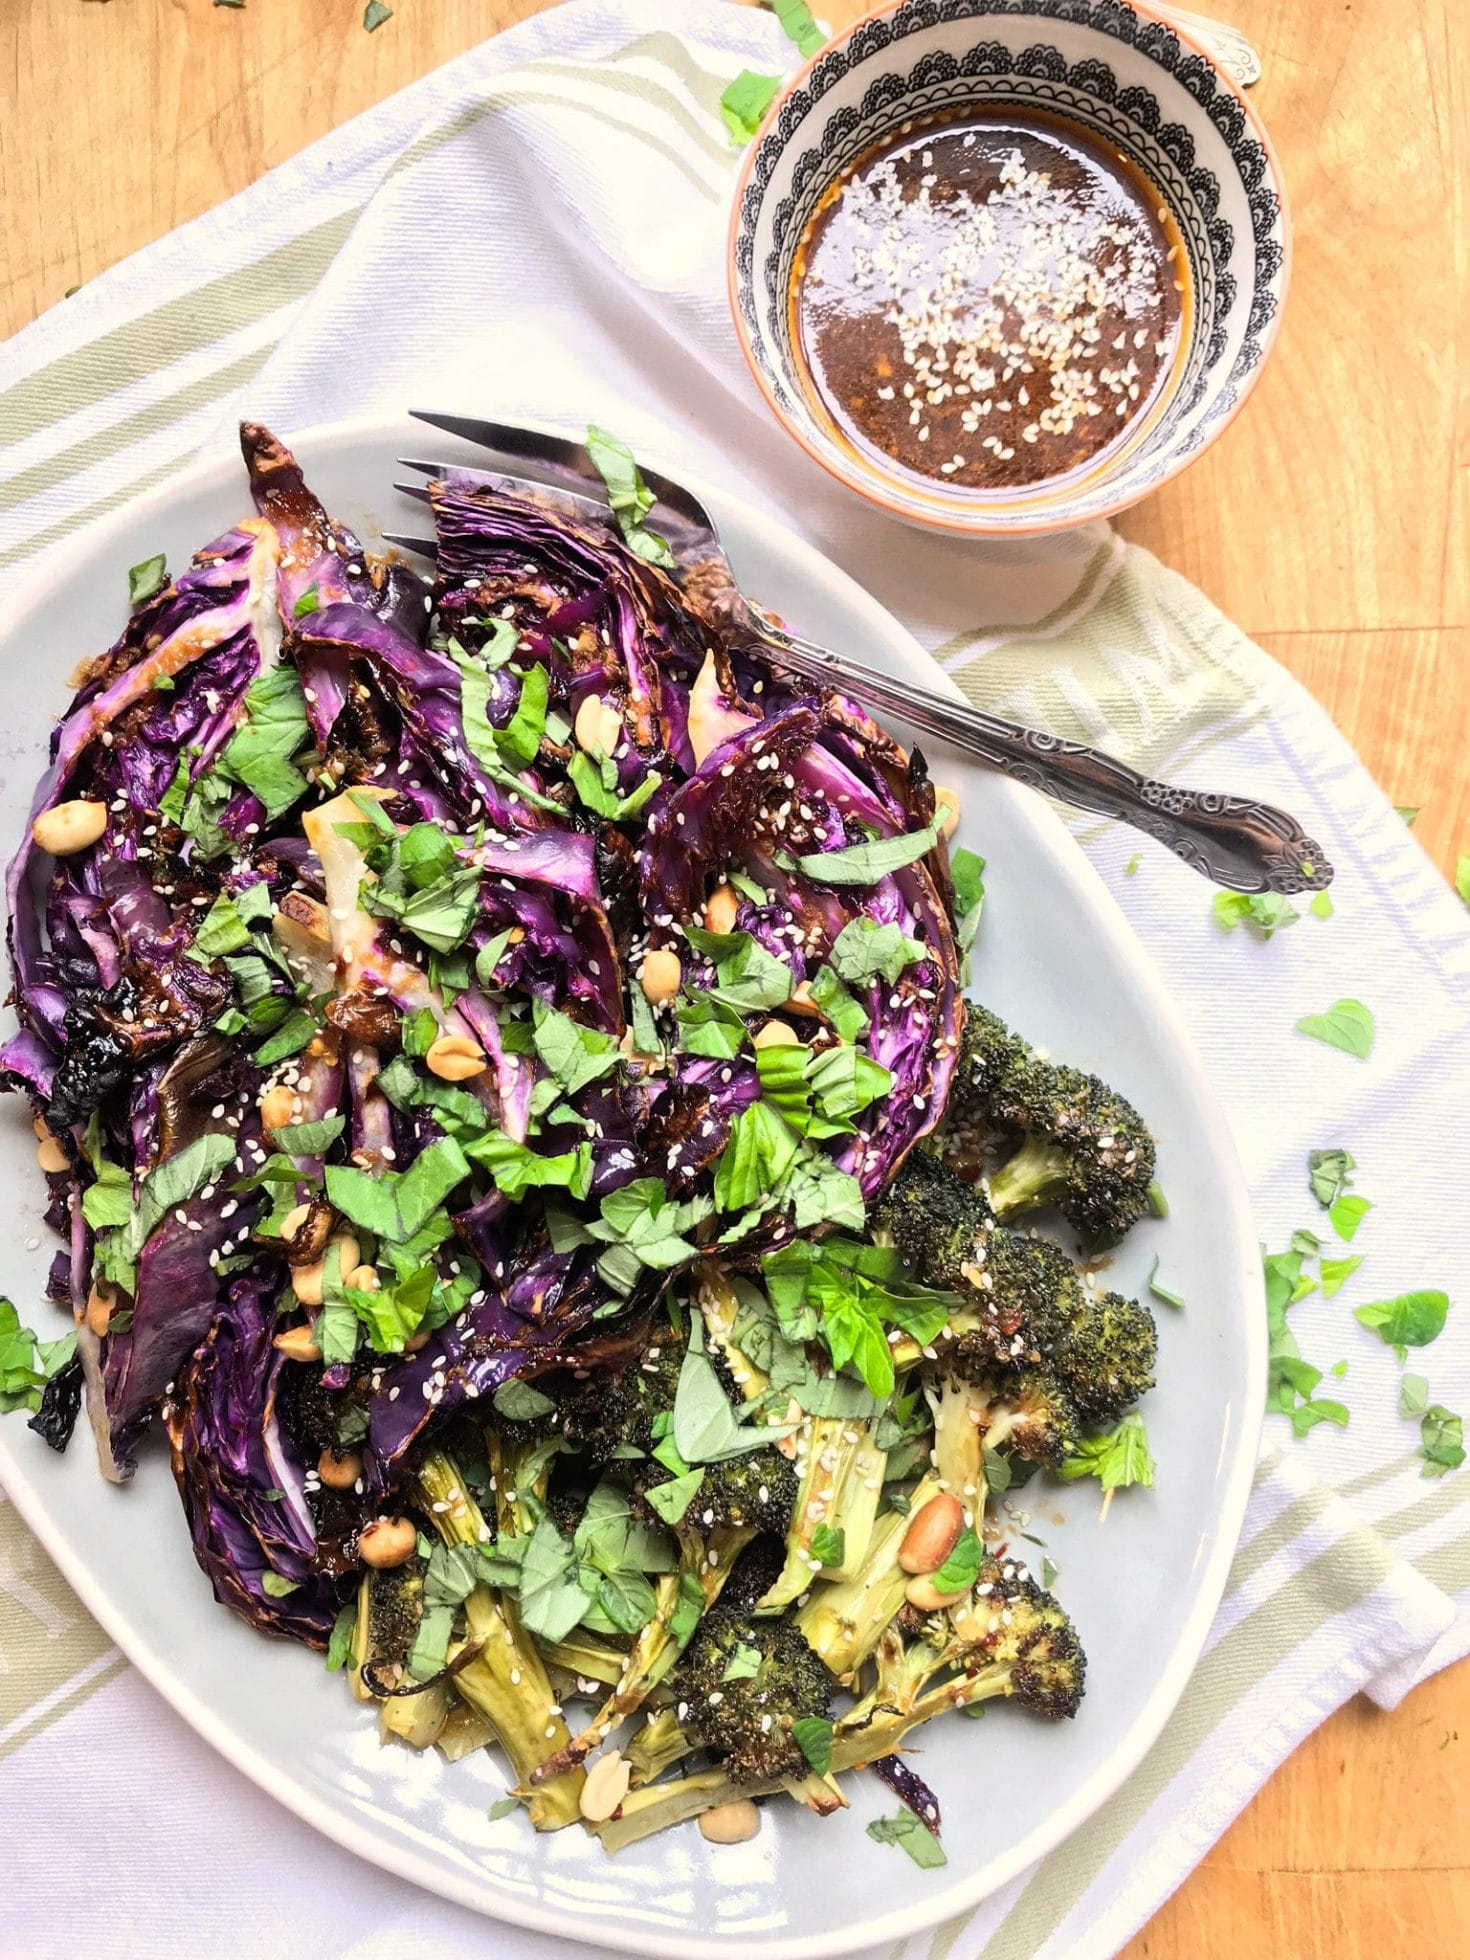 Charred Broccoli and Cabbage with Sesame Vinaigrette